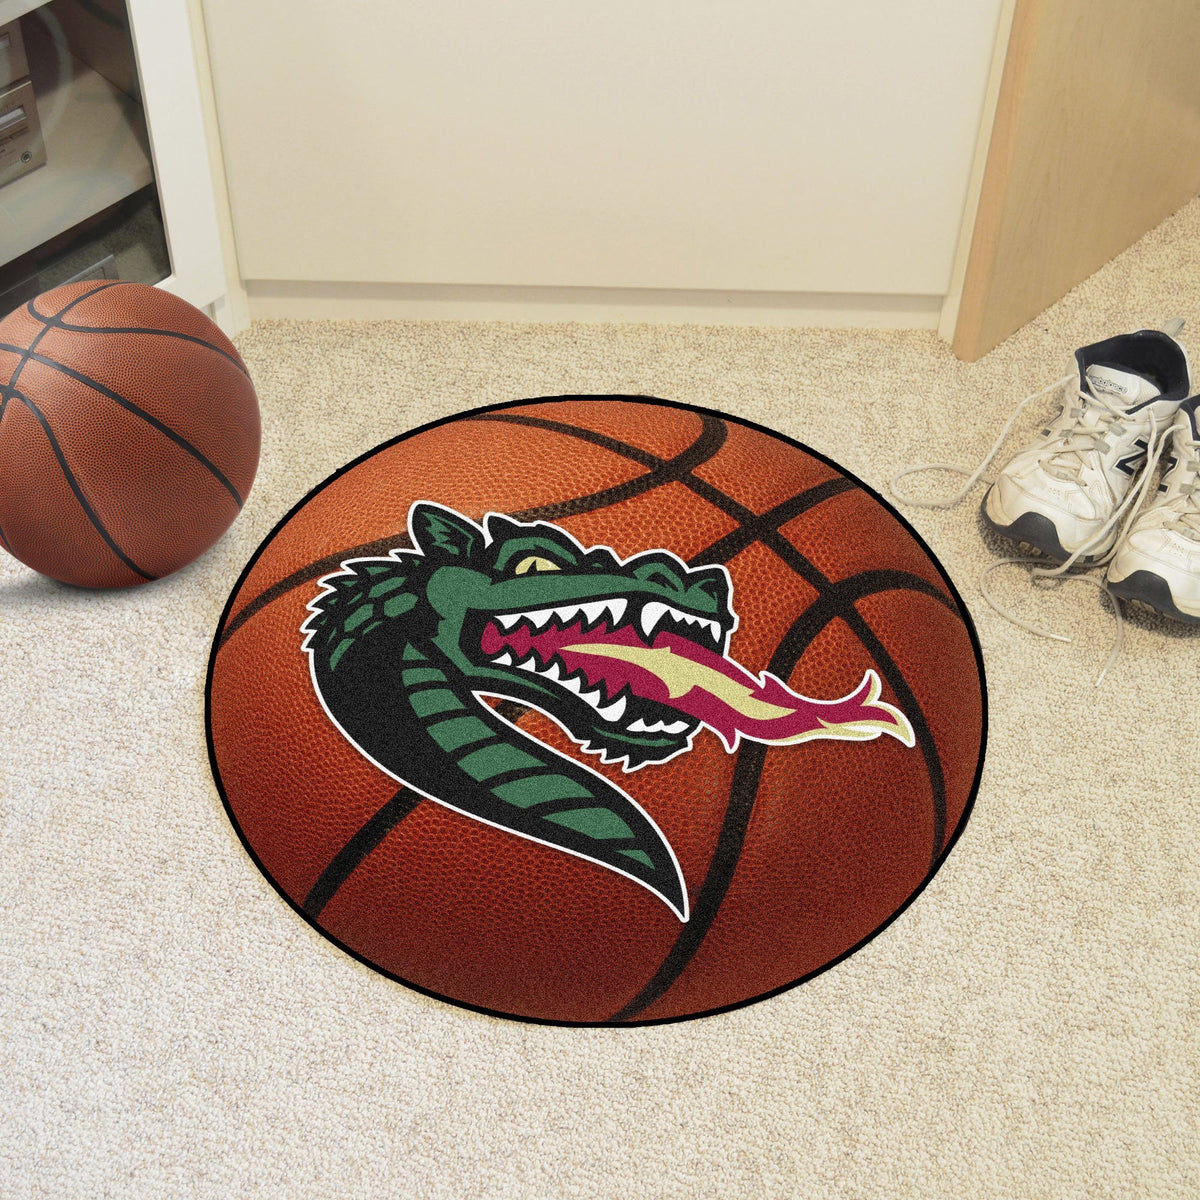 Collegiate - Basketball Mat: T - Z Collegiate Mats, Rectangular Mats, Basketball Mat, Collegiate, Home Fan Mats UAB